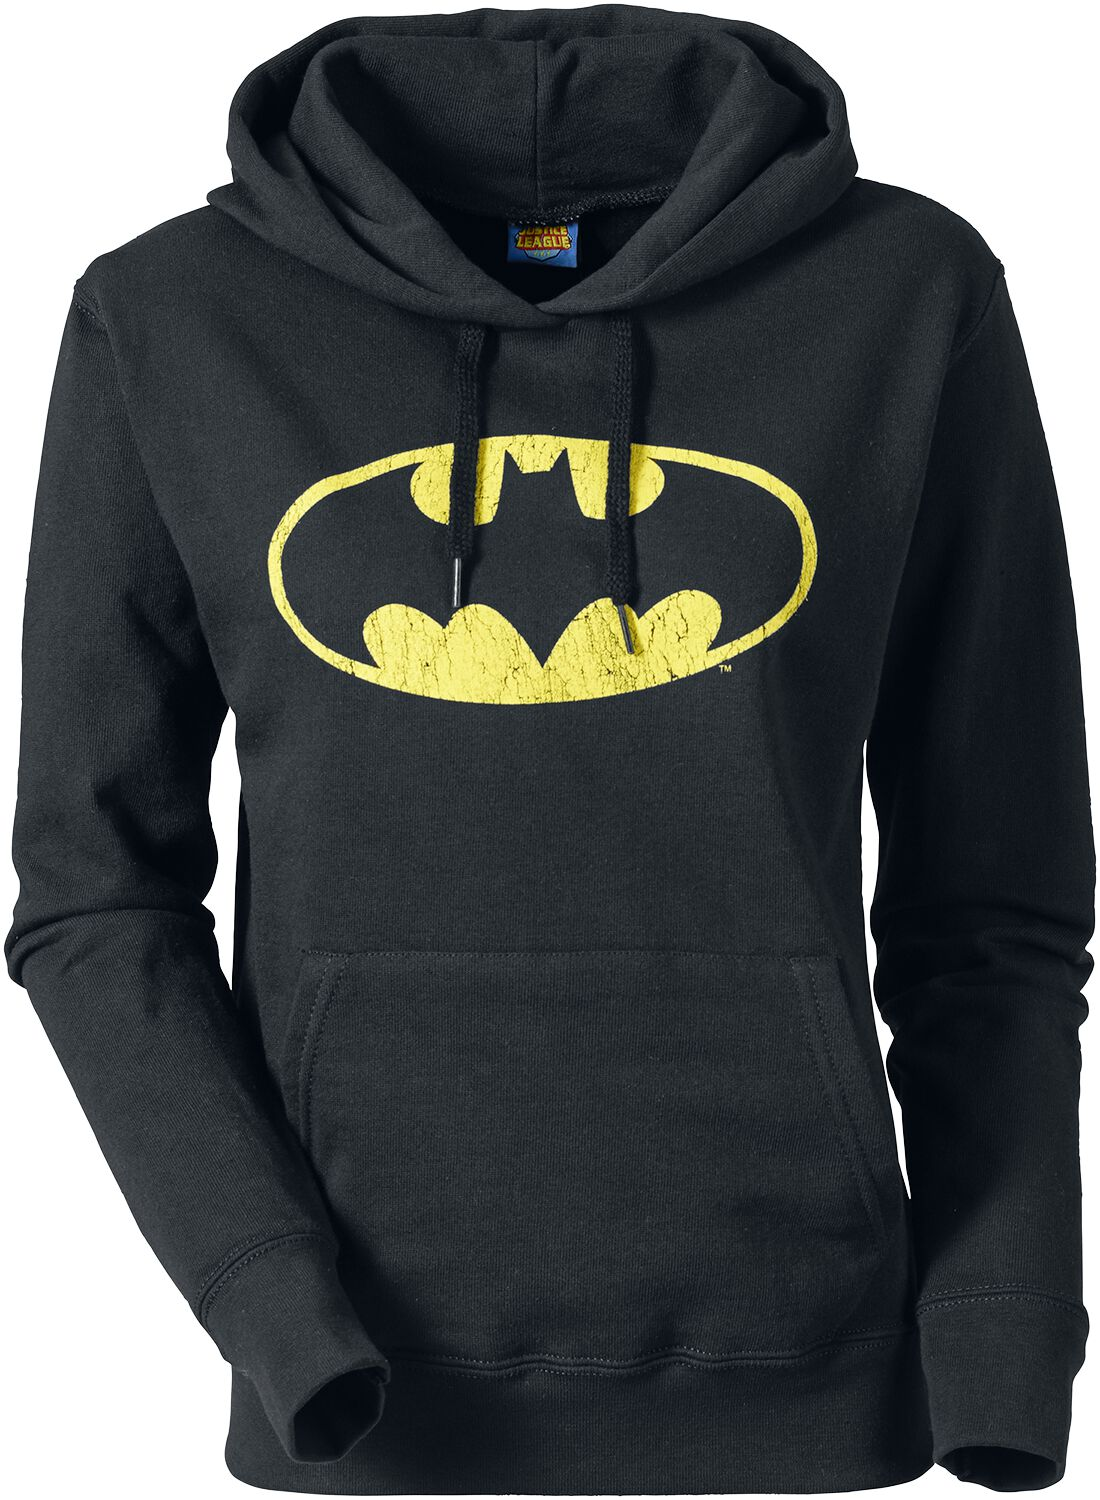 Image of   Batman Logo Girlie hættetrøje sort